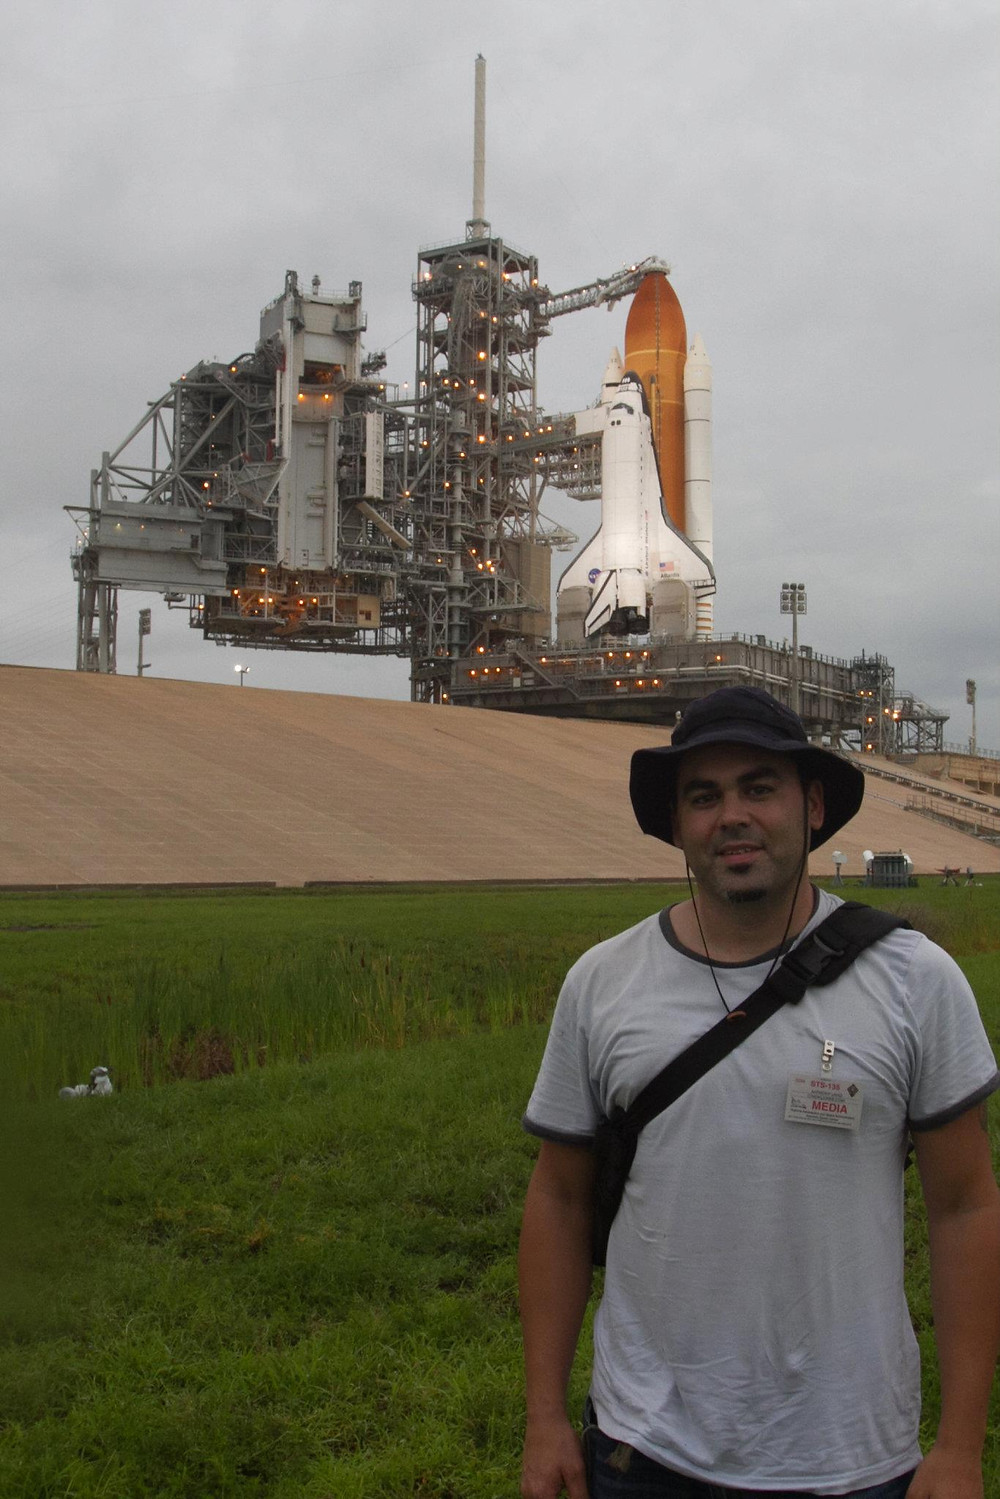 Me, standing in front of the Shuttle Atlantis, 10 hours before liftoff on her final mission - STS-135.